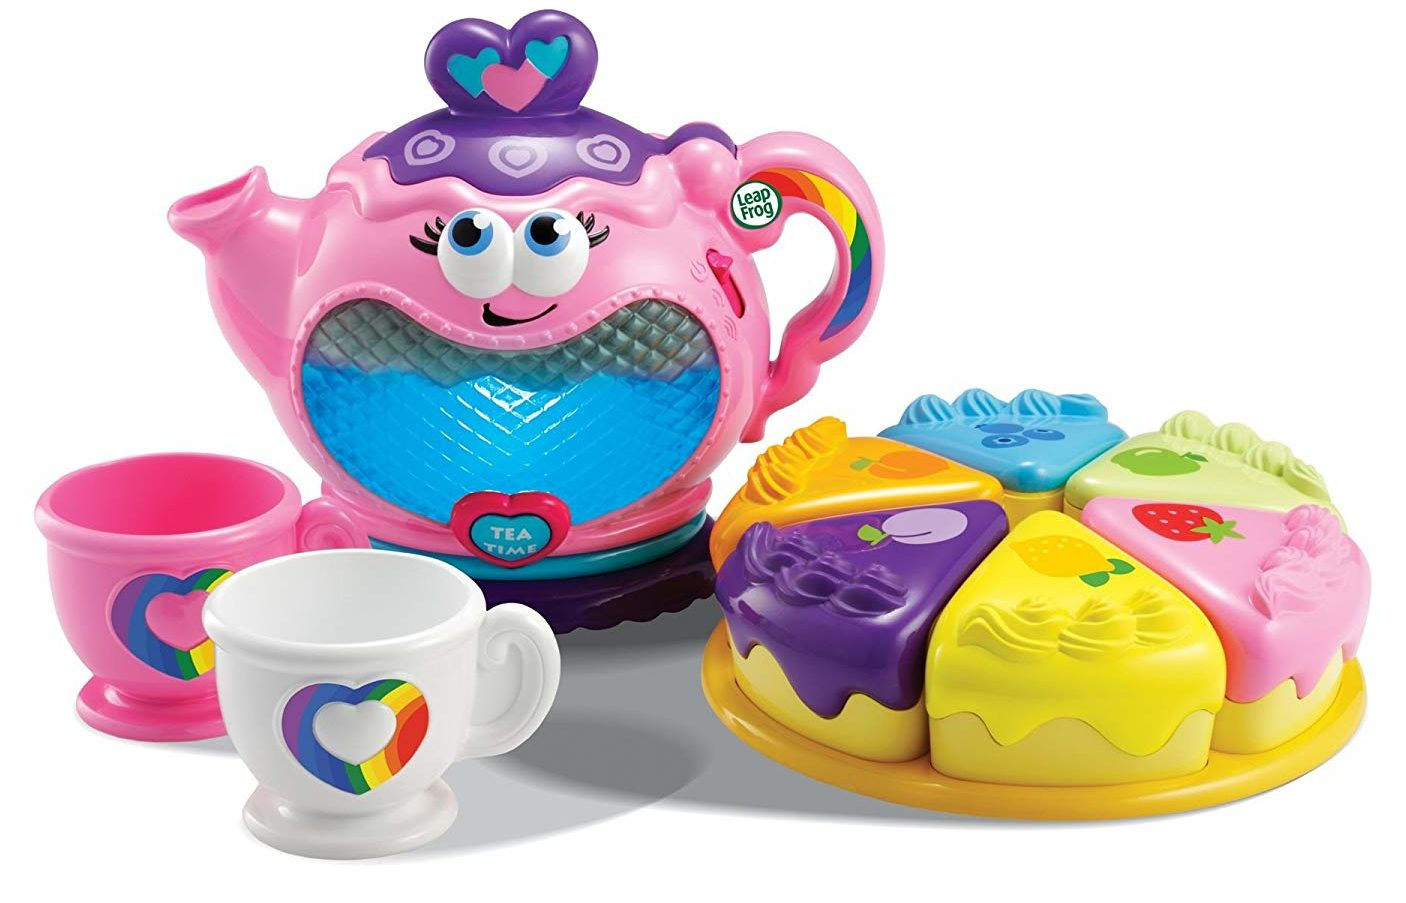 """Best Toys For One Year Rainbow Tea Party """"width ="""" 400 """"height ="""" 257 """"srcset ="""" https: // www.top5.com/wp-content/uploads/2013/06/best-toys-for-aone-old-rainbow-tea-party-e1557253817799.jpg 1406w, https://www.top5.com/wp-content /uploads/2013/06/best-toys-for-a-one-old-rainbow-tea-party-e1557253817799-300x193.jpg 300w, https: // www. top5.com/wp-content/uploads/2013/06/best-toys-for-aone-year-old-rainbow-tea-party-e155725 3817799-768x493.jpg 768w, https://www.top5.com/ wp-content / uploads / 2013/06 / best-toys-for-a-one-old-rainbow-tea-party-e1557253817799-1024x658 .jpg 1024w """"Sizes ="""" (max width: 400px) 100VW, 400PX [19659069] Amazon </p> </div> <p>  It's tea time. </p> </div> <p>  This 10-piece musical tea party promises good learning times, new words and a great time. It teaches more than 50 phrases and tones as well as 7 Tea-Time learning songs. Your child will not only make Mr. Teddy Bear the best tea he has ever tasted, but he will also learn how to understand colors and matches, counting, manners and greetings. </p> <p>  The teapot lights in six colors and can be opened revealing a shiny mirror. </p> <p> <span class="""